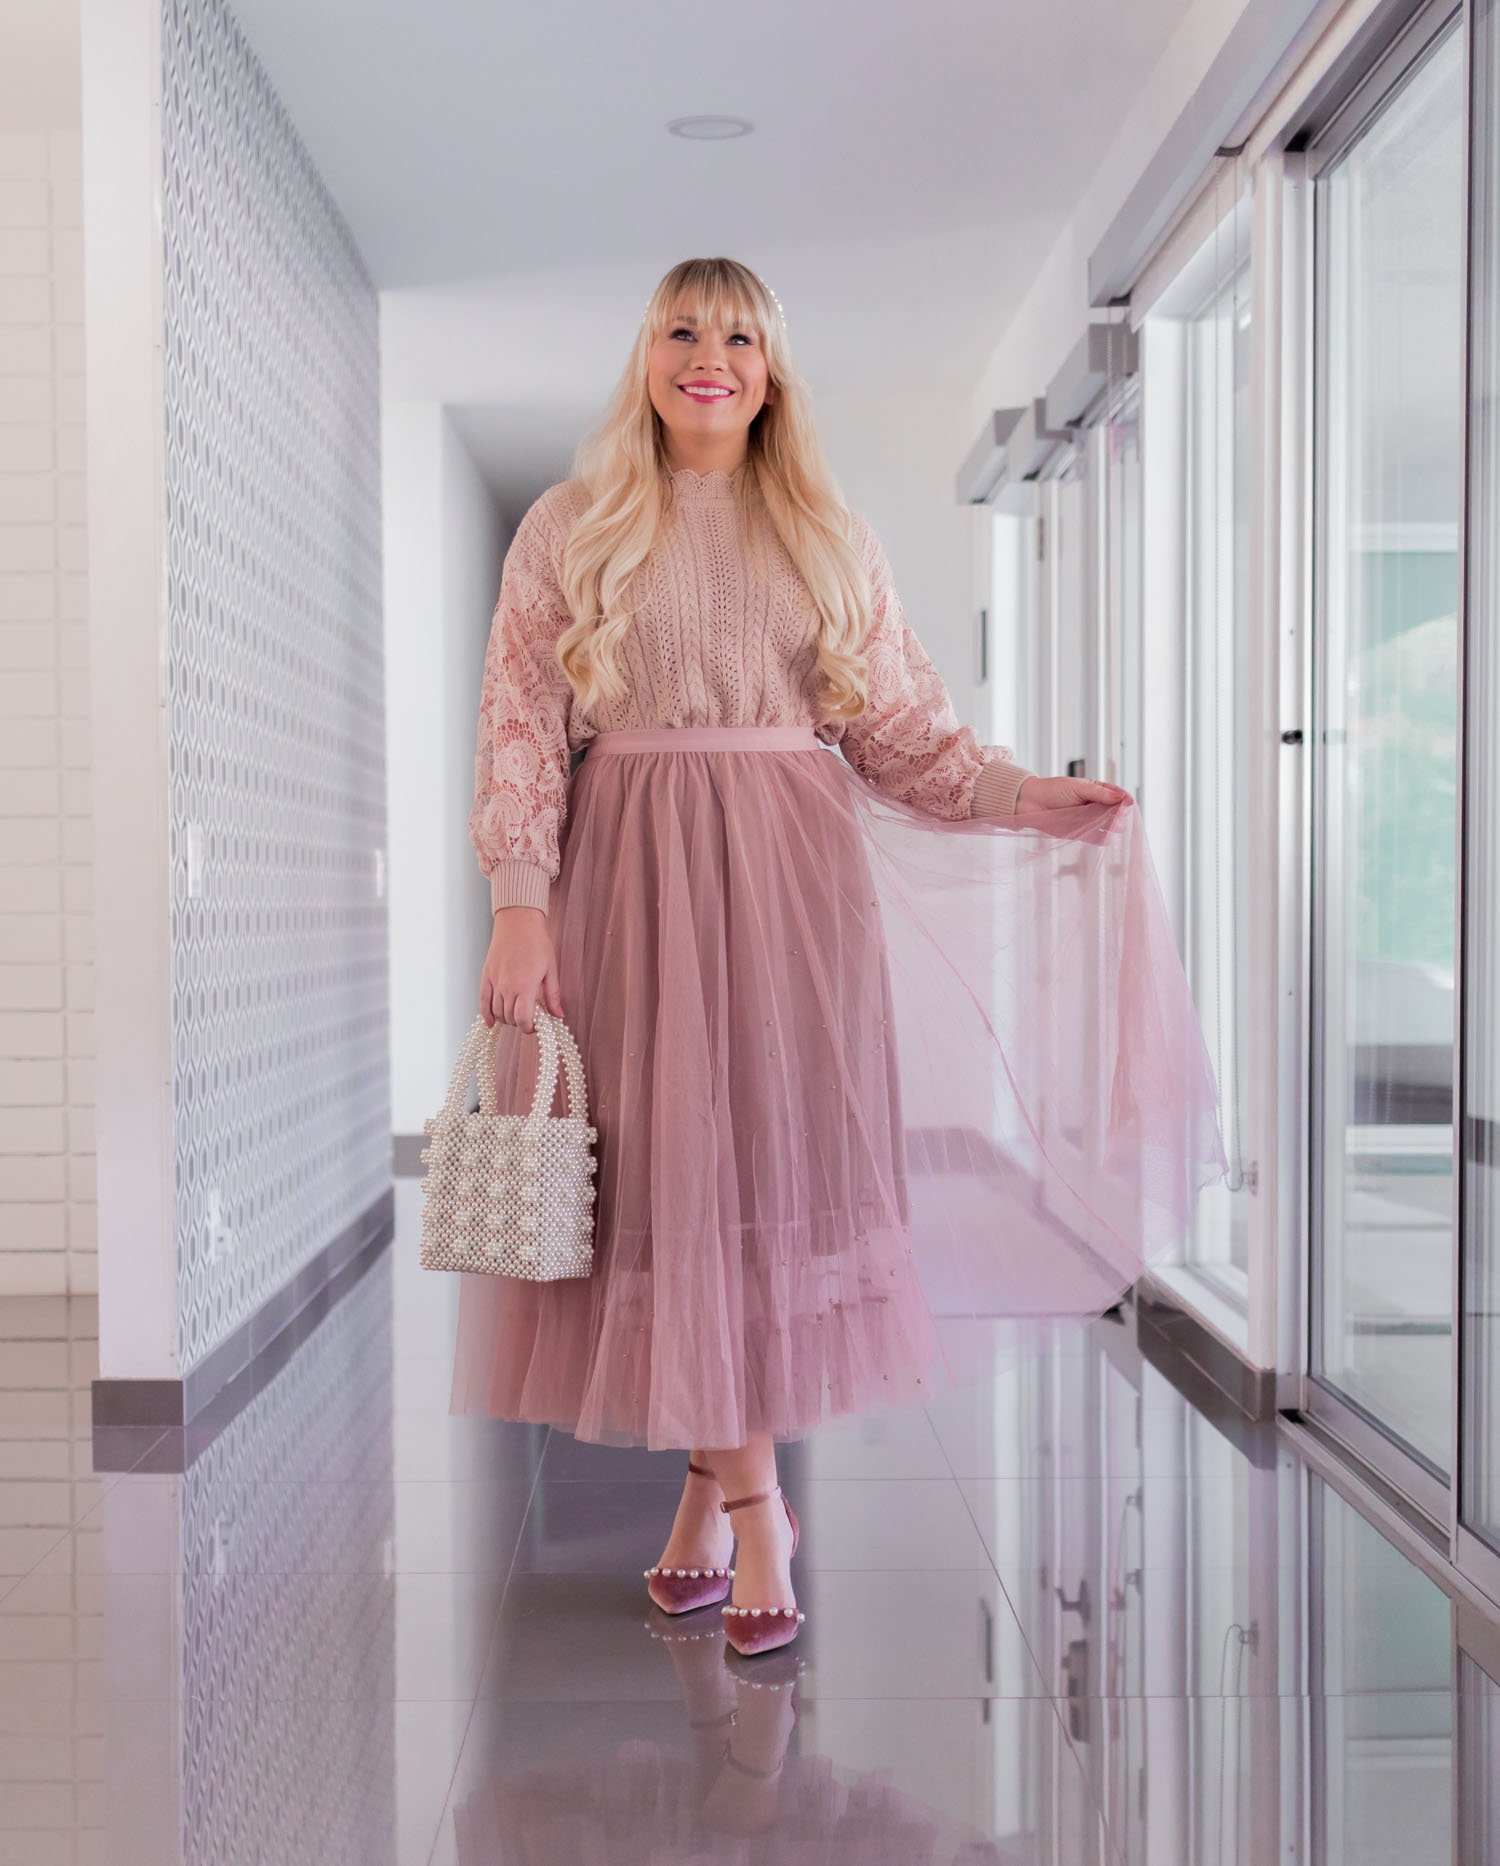 Elizabeth Hugen of Lizzie in Lace wears a pink holiday outfit with a sweater and tulle skirt.